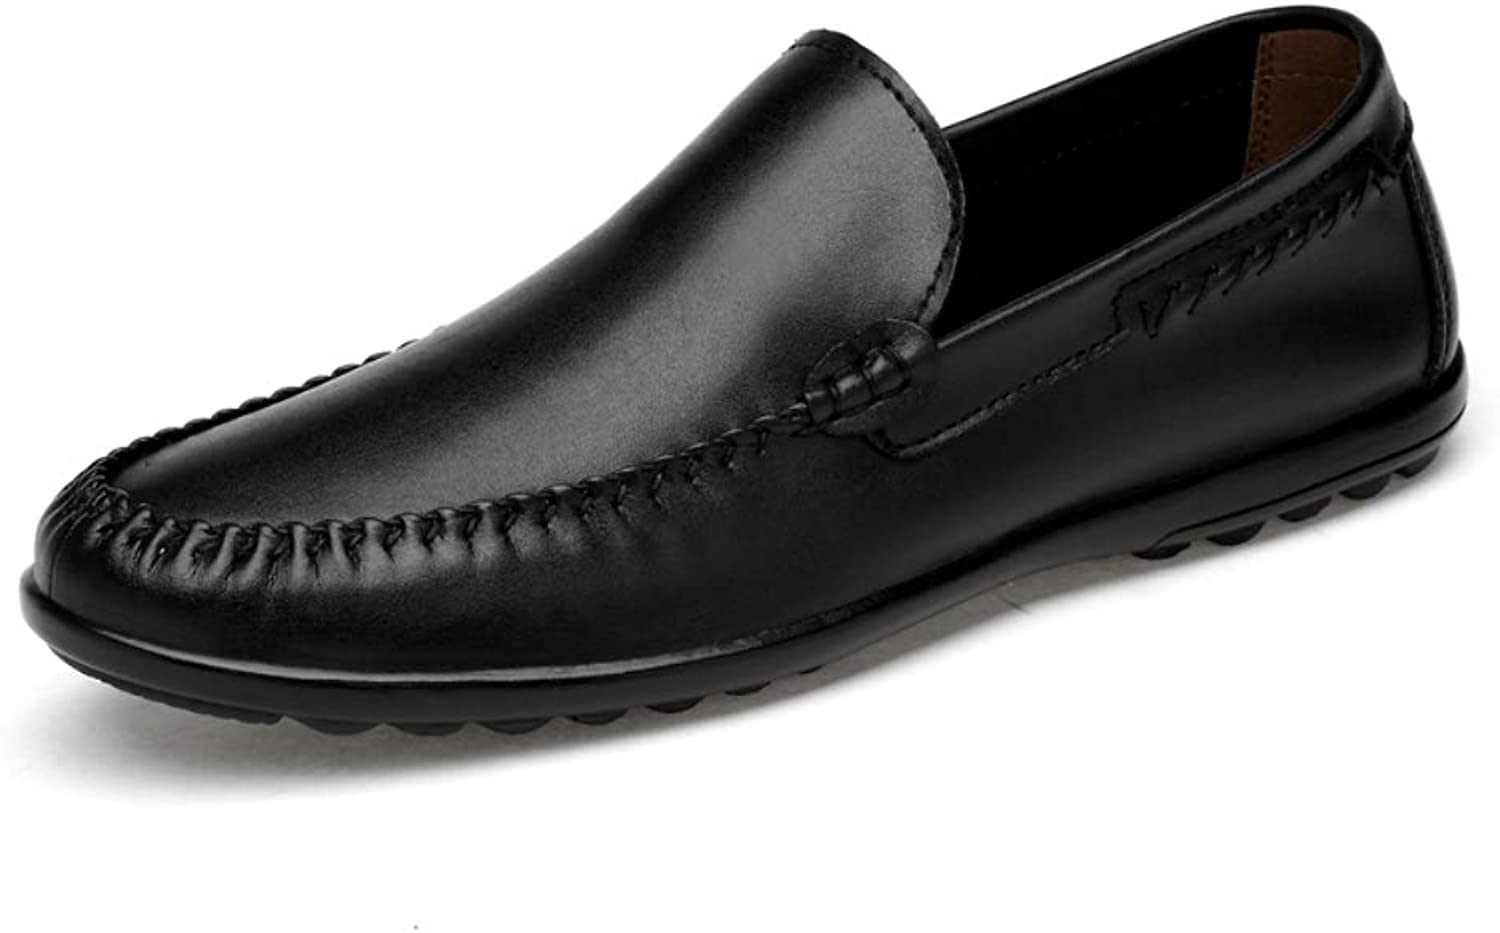 Men's Oxford shoes Soft Non-Slip Casual Driving shoes Leather